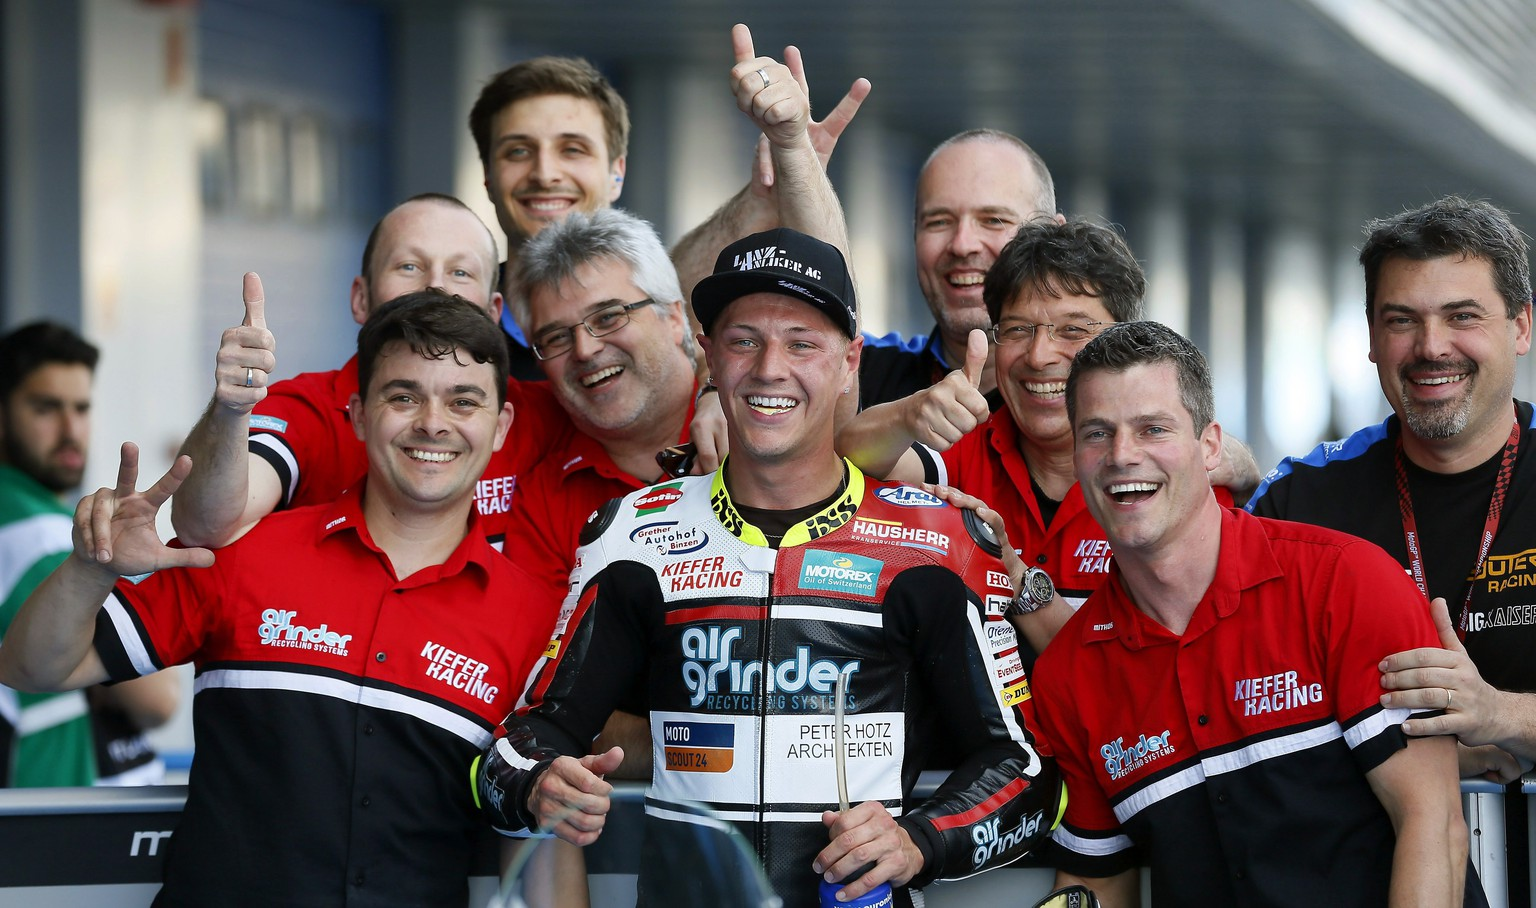 epa05946800 Swiss Moto2 rider Dominique Aegerter (C) celebrates with his team after he finished in third position for Spain's GP race at Jerez de la Frontera's track, southern Spain, 06 May 2017. The race will be held on 07 May.  EPA/JOSE MANUEL VIDAL